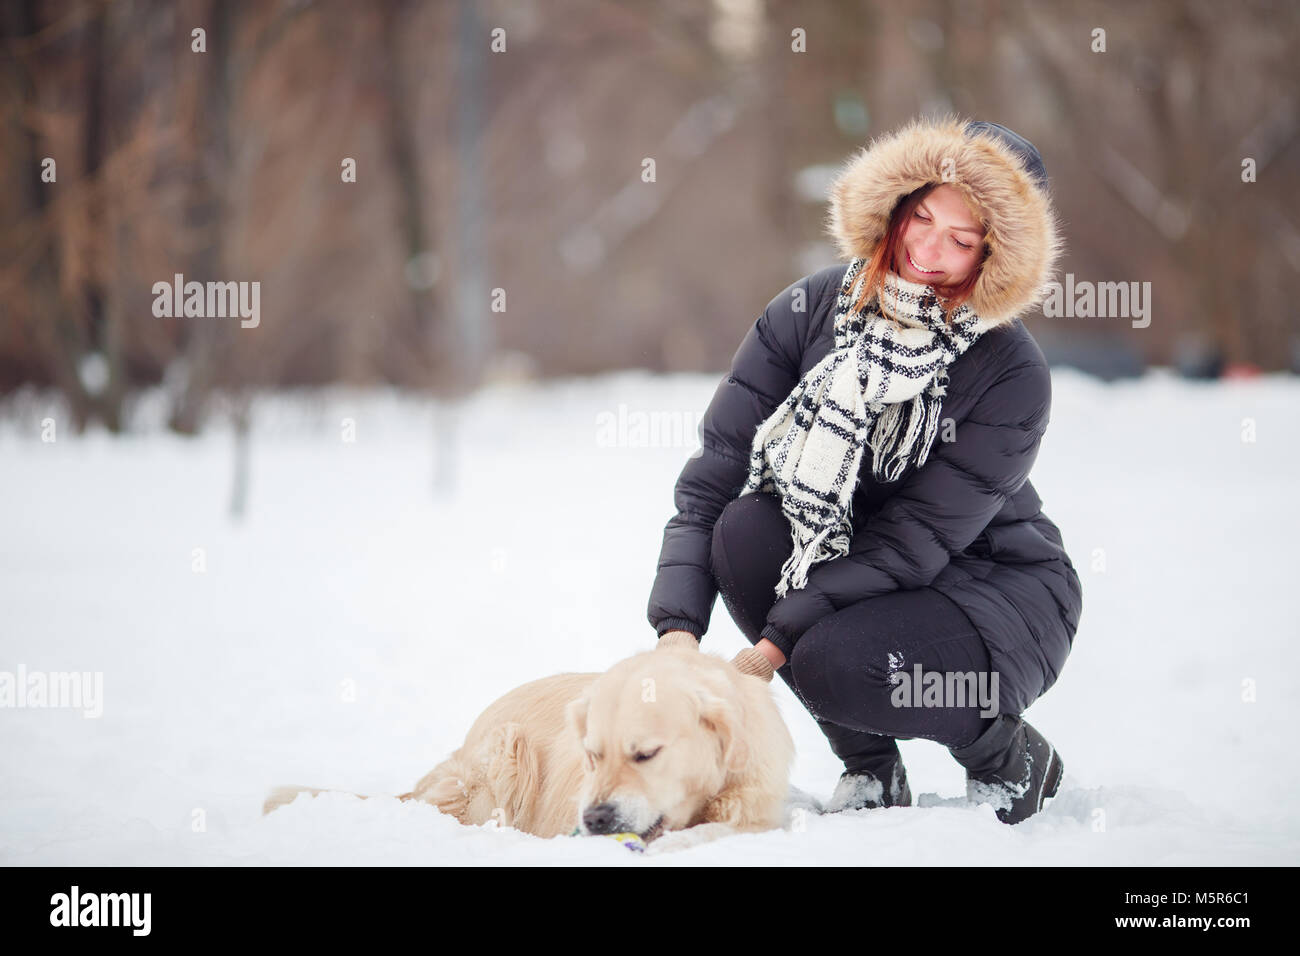 Photo of woman squatting next to labrador in winter park - Stock Image